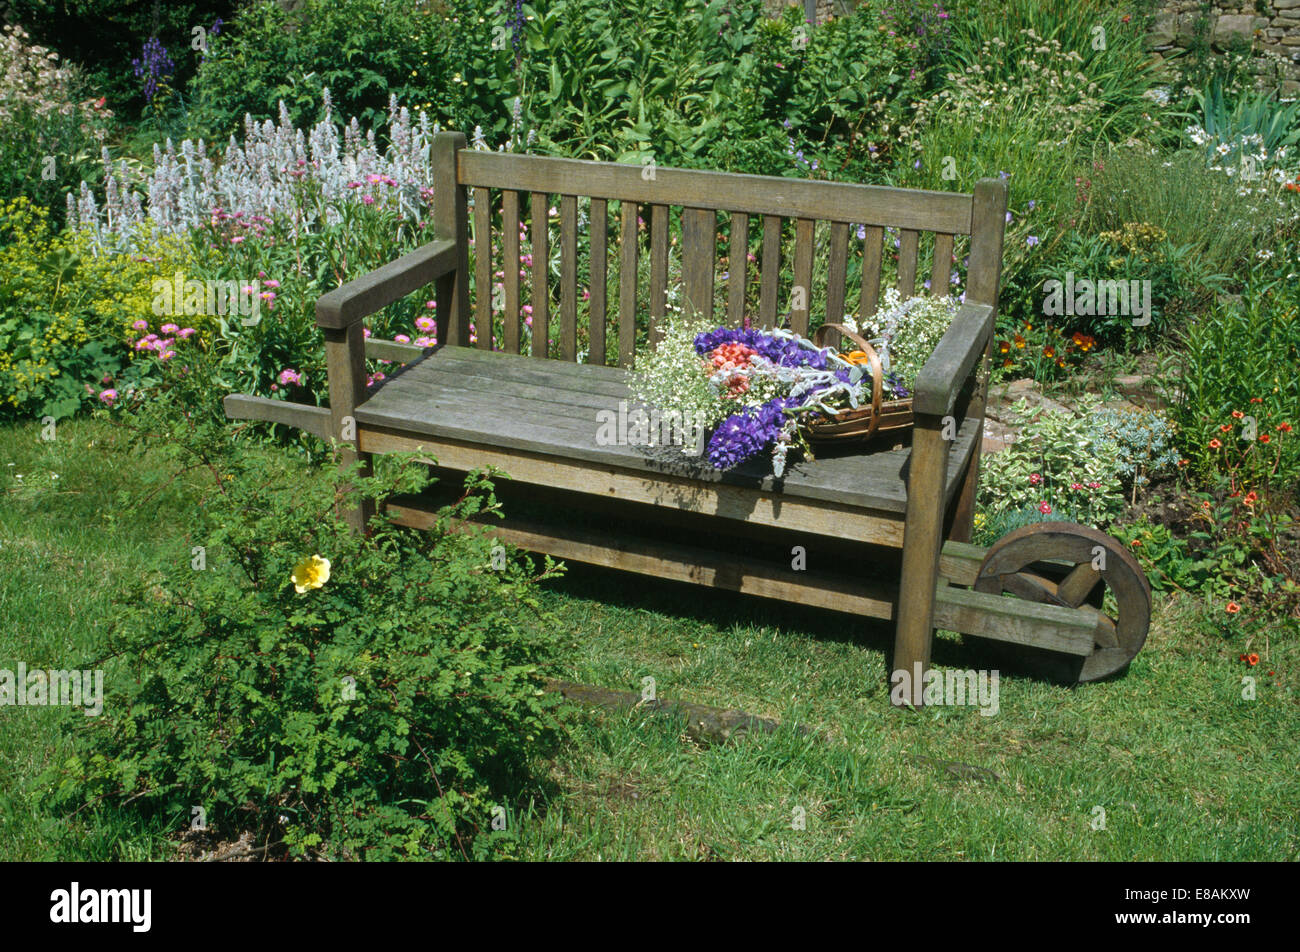 gardens country furniture benches stockfotos gardens. Black Bedroom Furniture Sets. Home Design Ideas